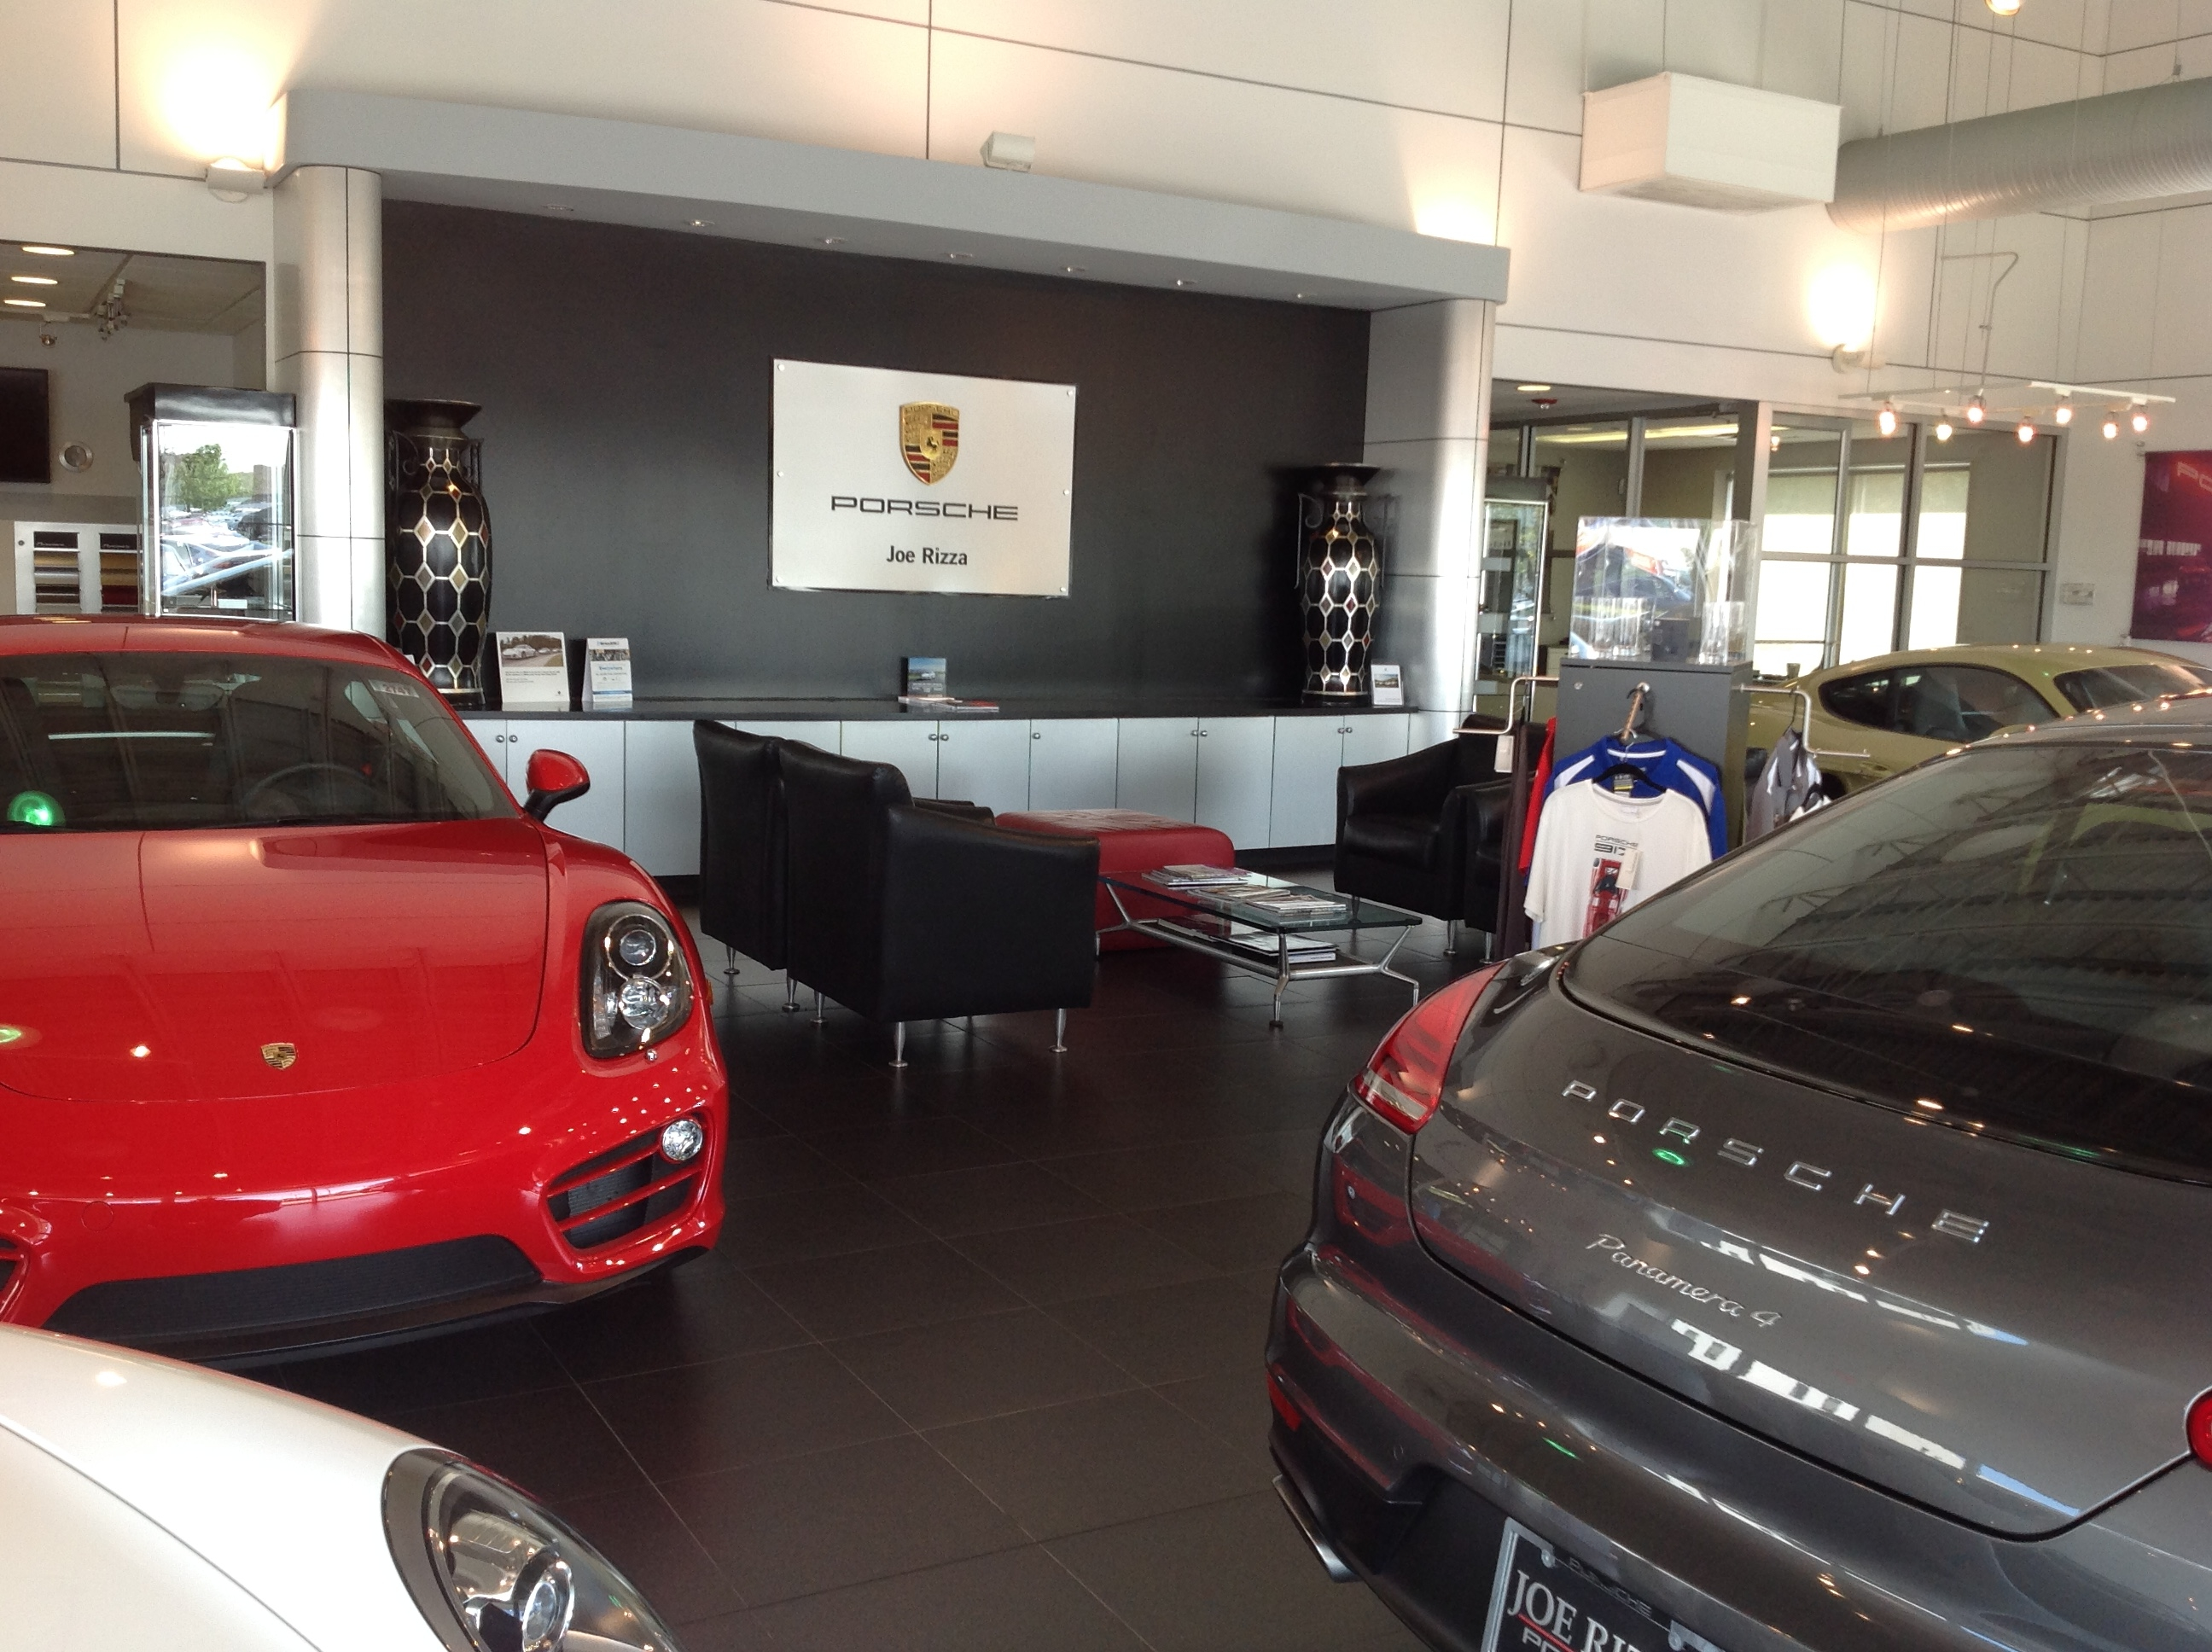 Porsche Orland Park: A Joe Rizza Dealership, Orland Park ...